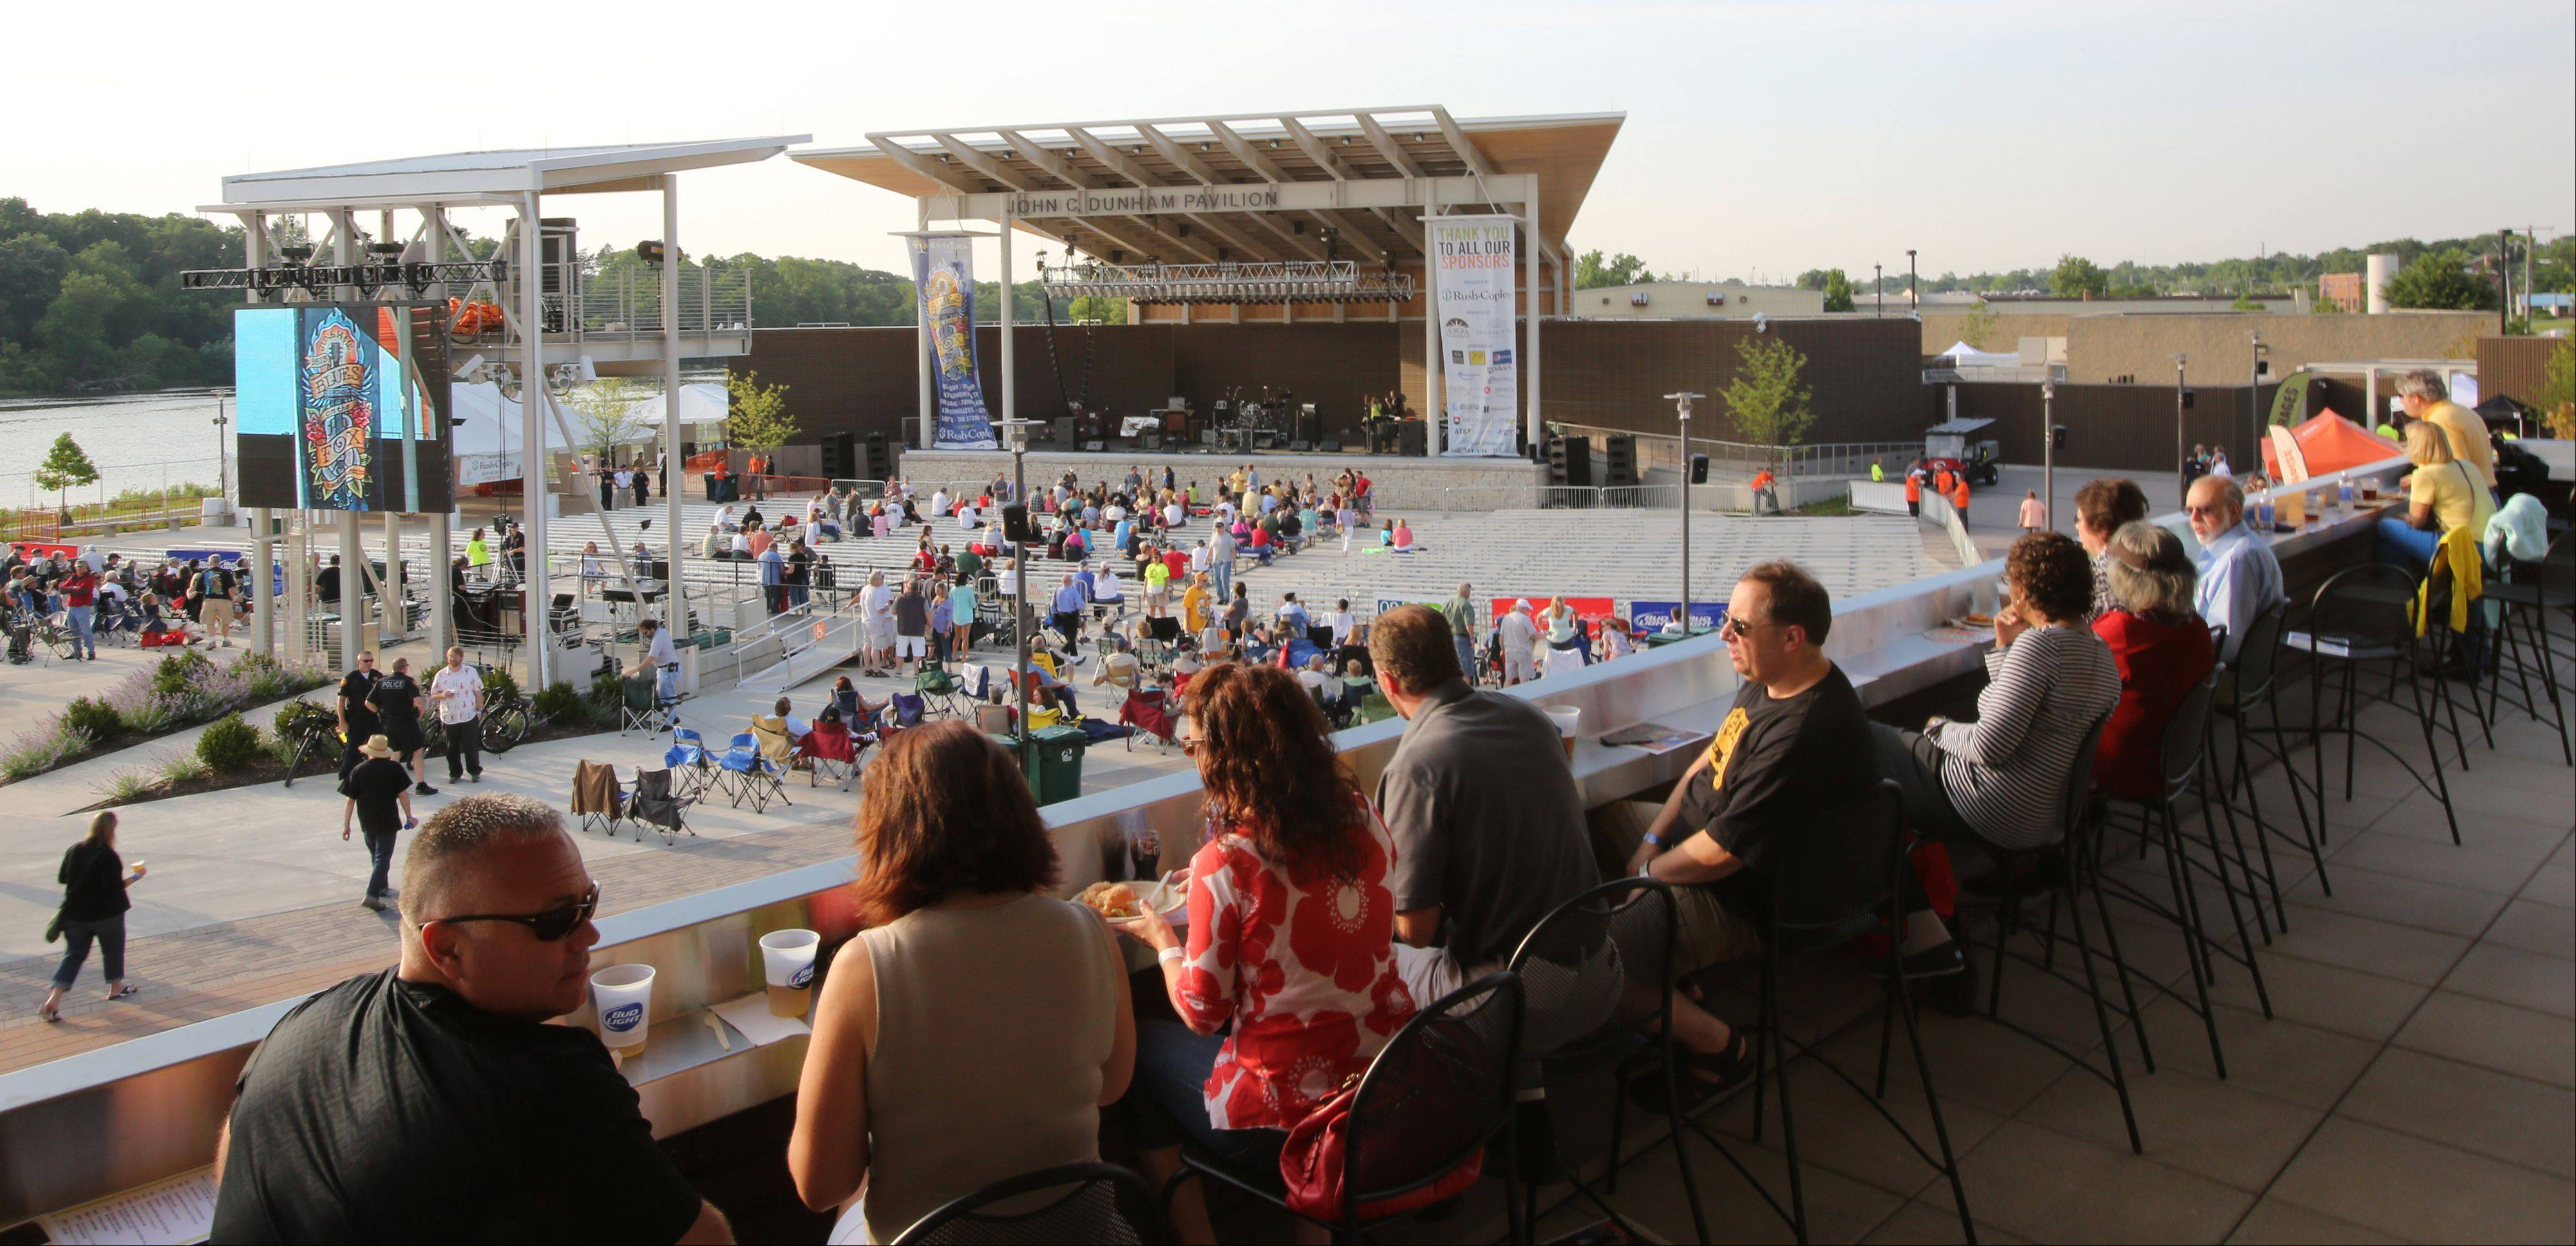 Festival goers on the VIP deck watch the crowd fill in during the opening night of RiverEdge Park, coinciding with the 17th annual Blues on the Fox festival.